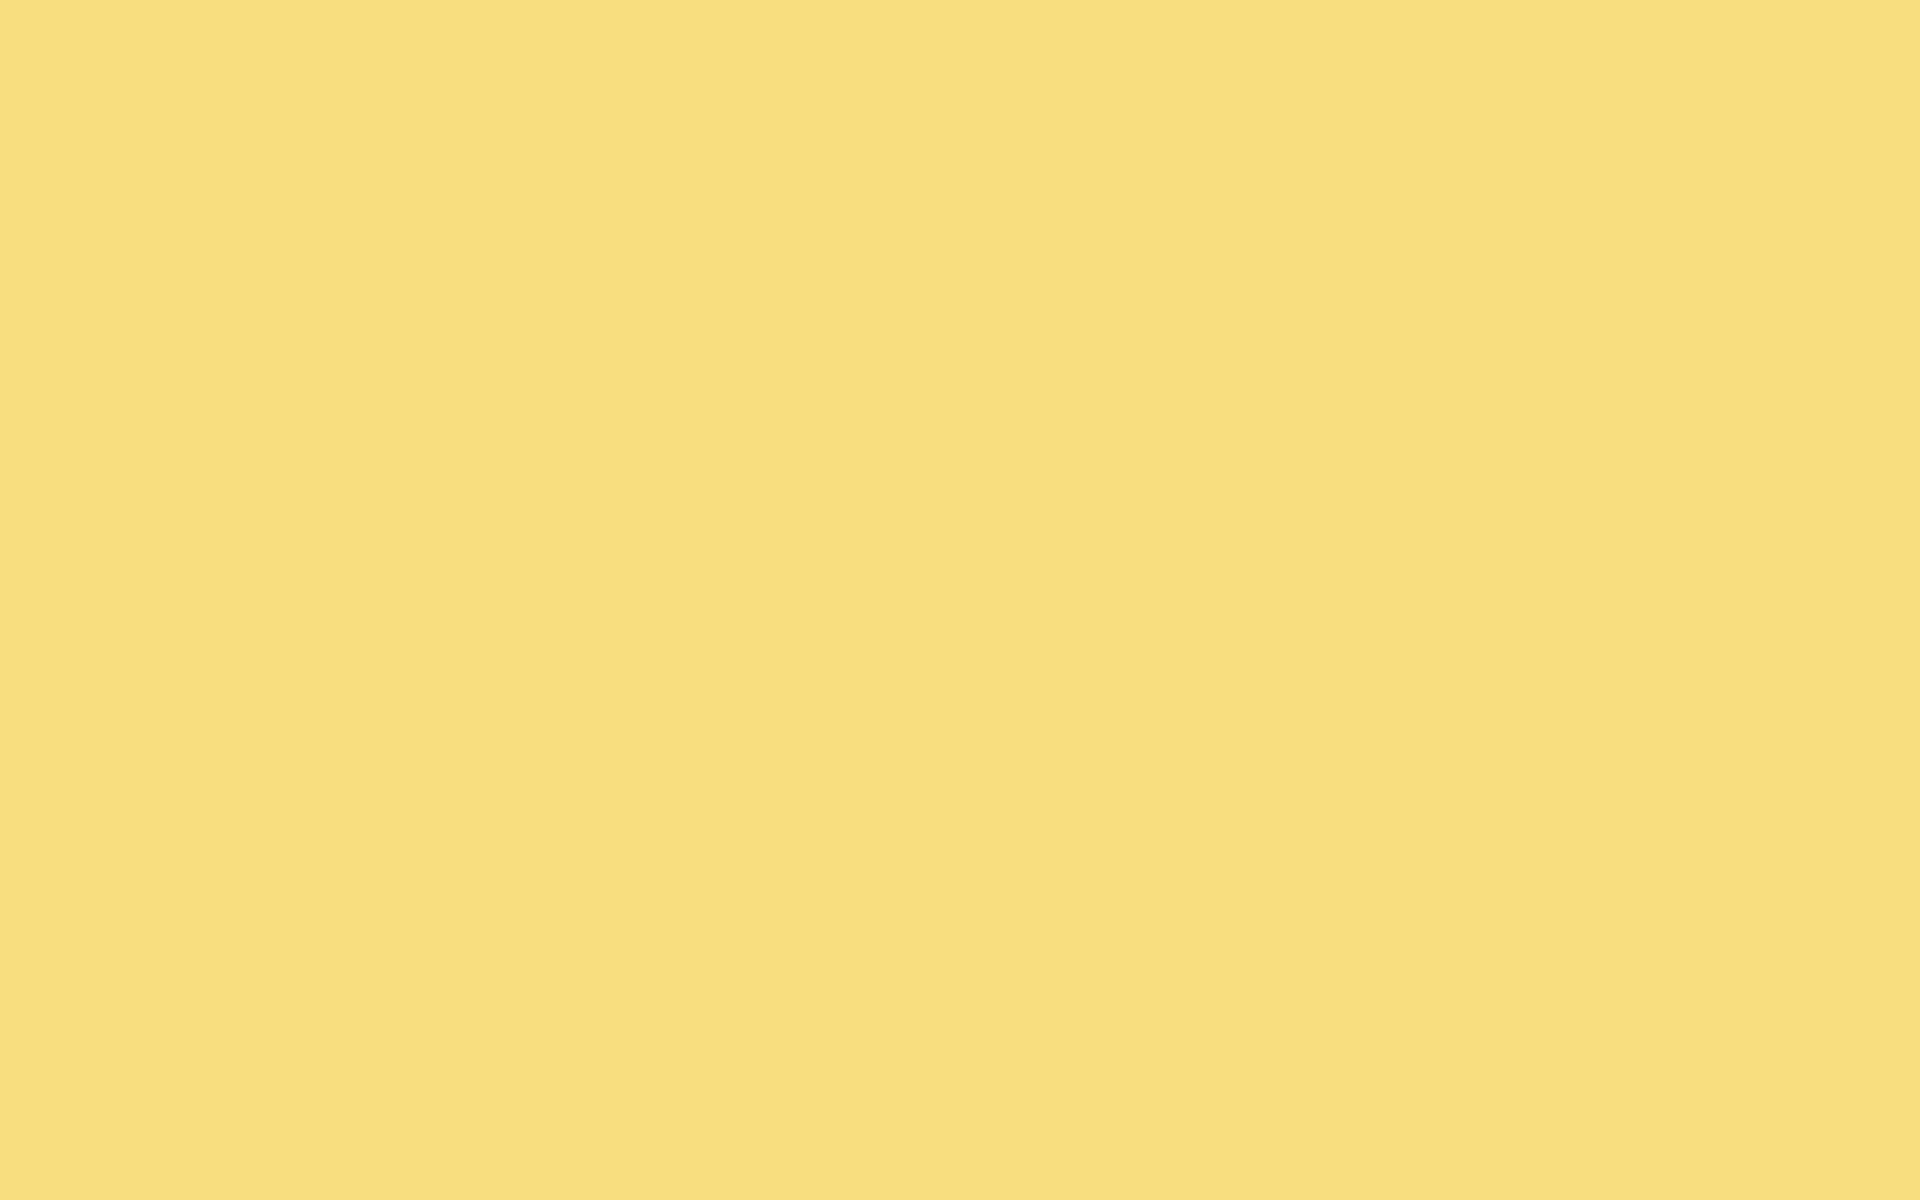 1920x1200 Mellow Yellow Solid Color Background